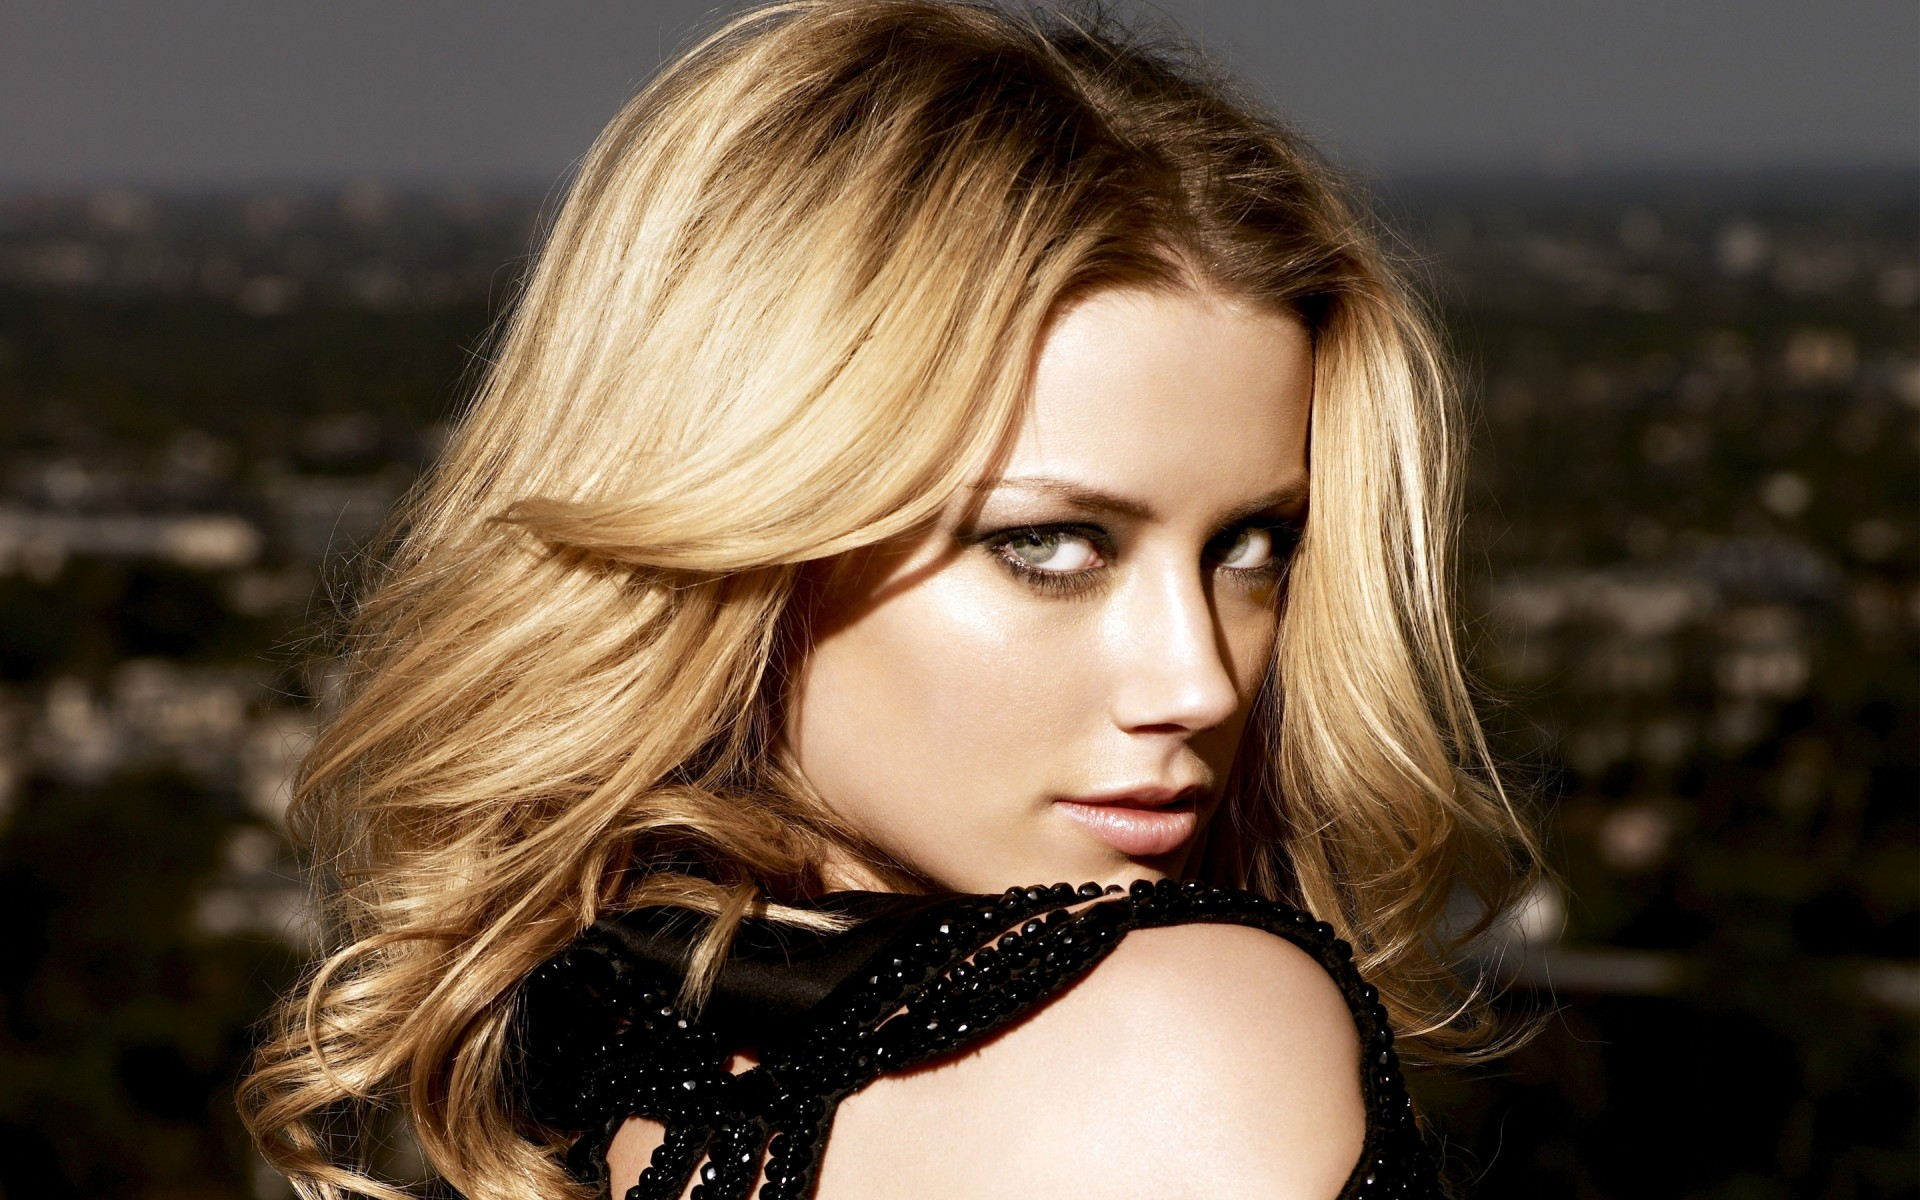 Amber Heard Wallpapers 10-4618